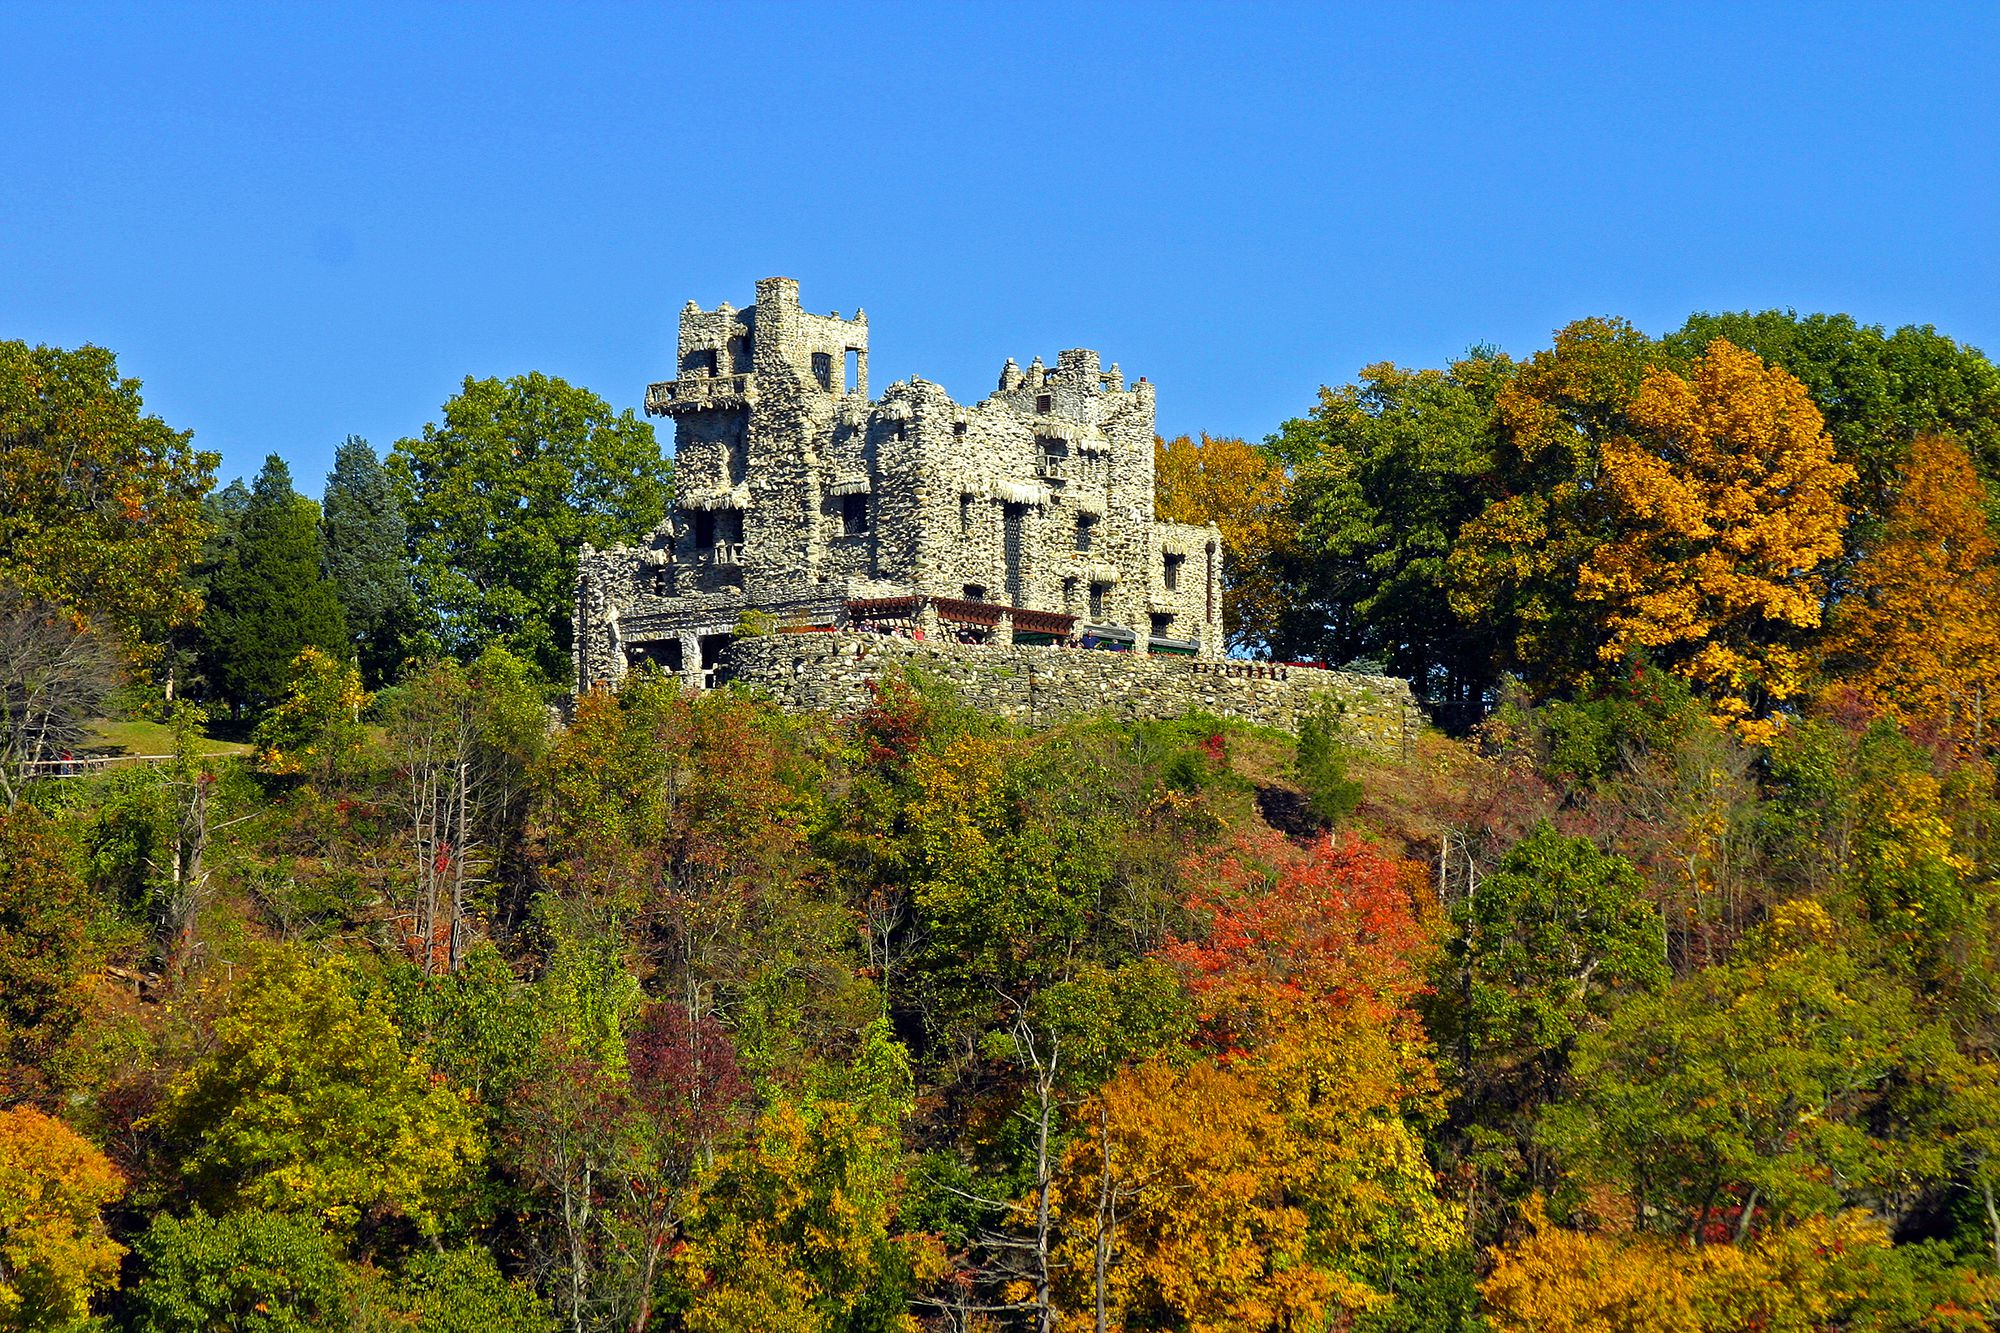 Gillette Castle - Best Things To Do in Connecticut